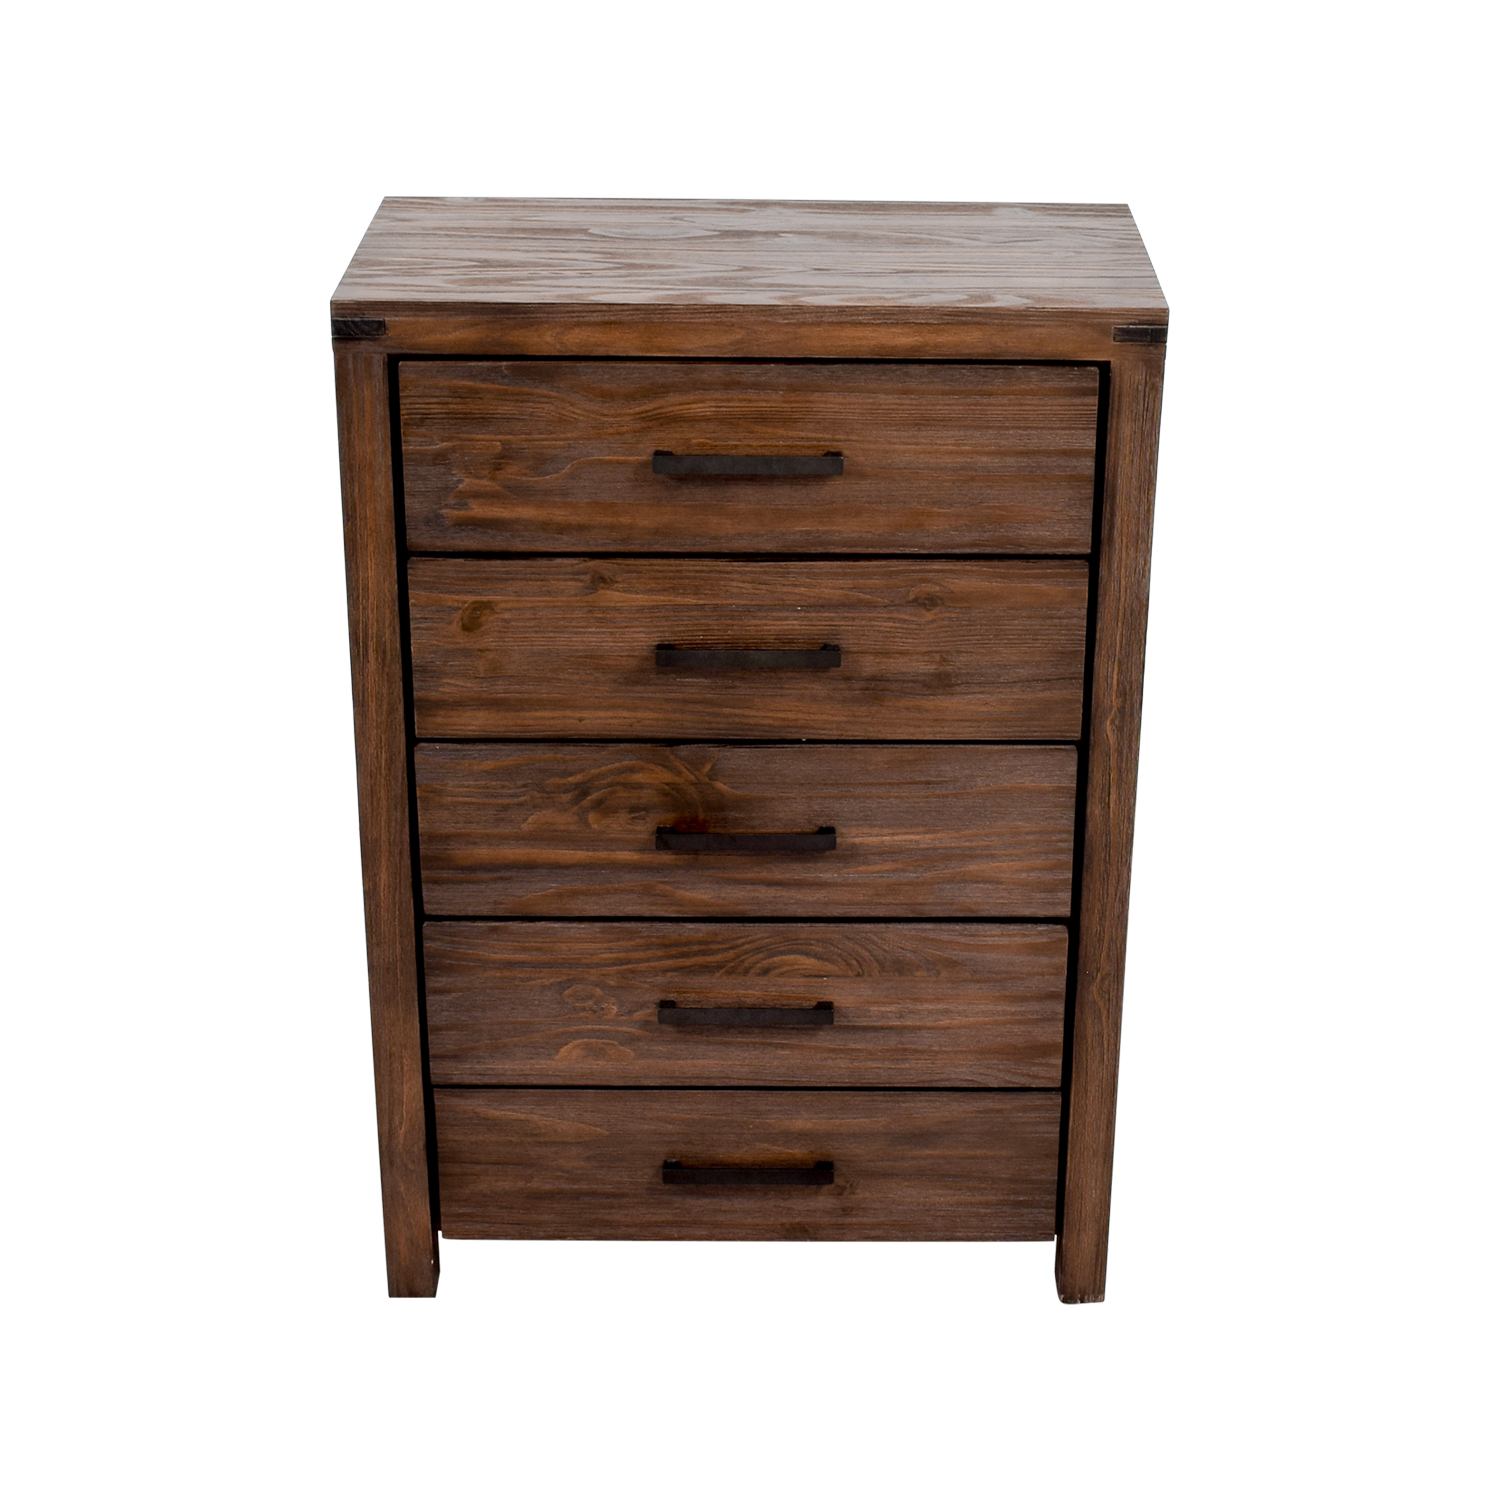 buy Bobs Furniture Bobs Furniture Austin Pine Chest online